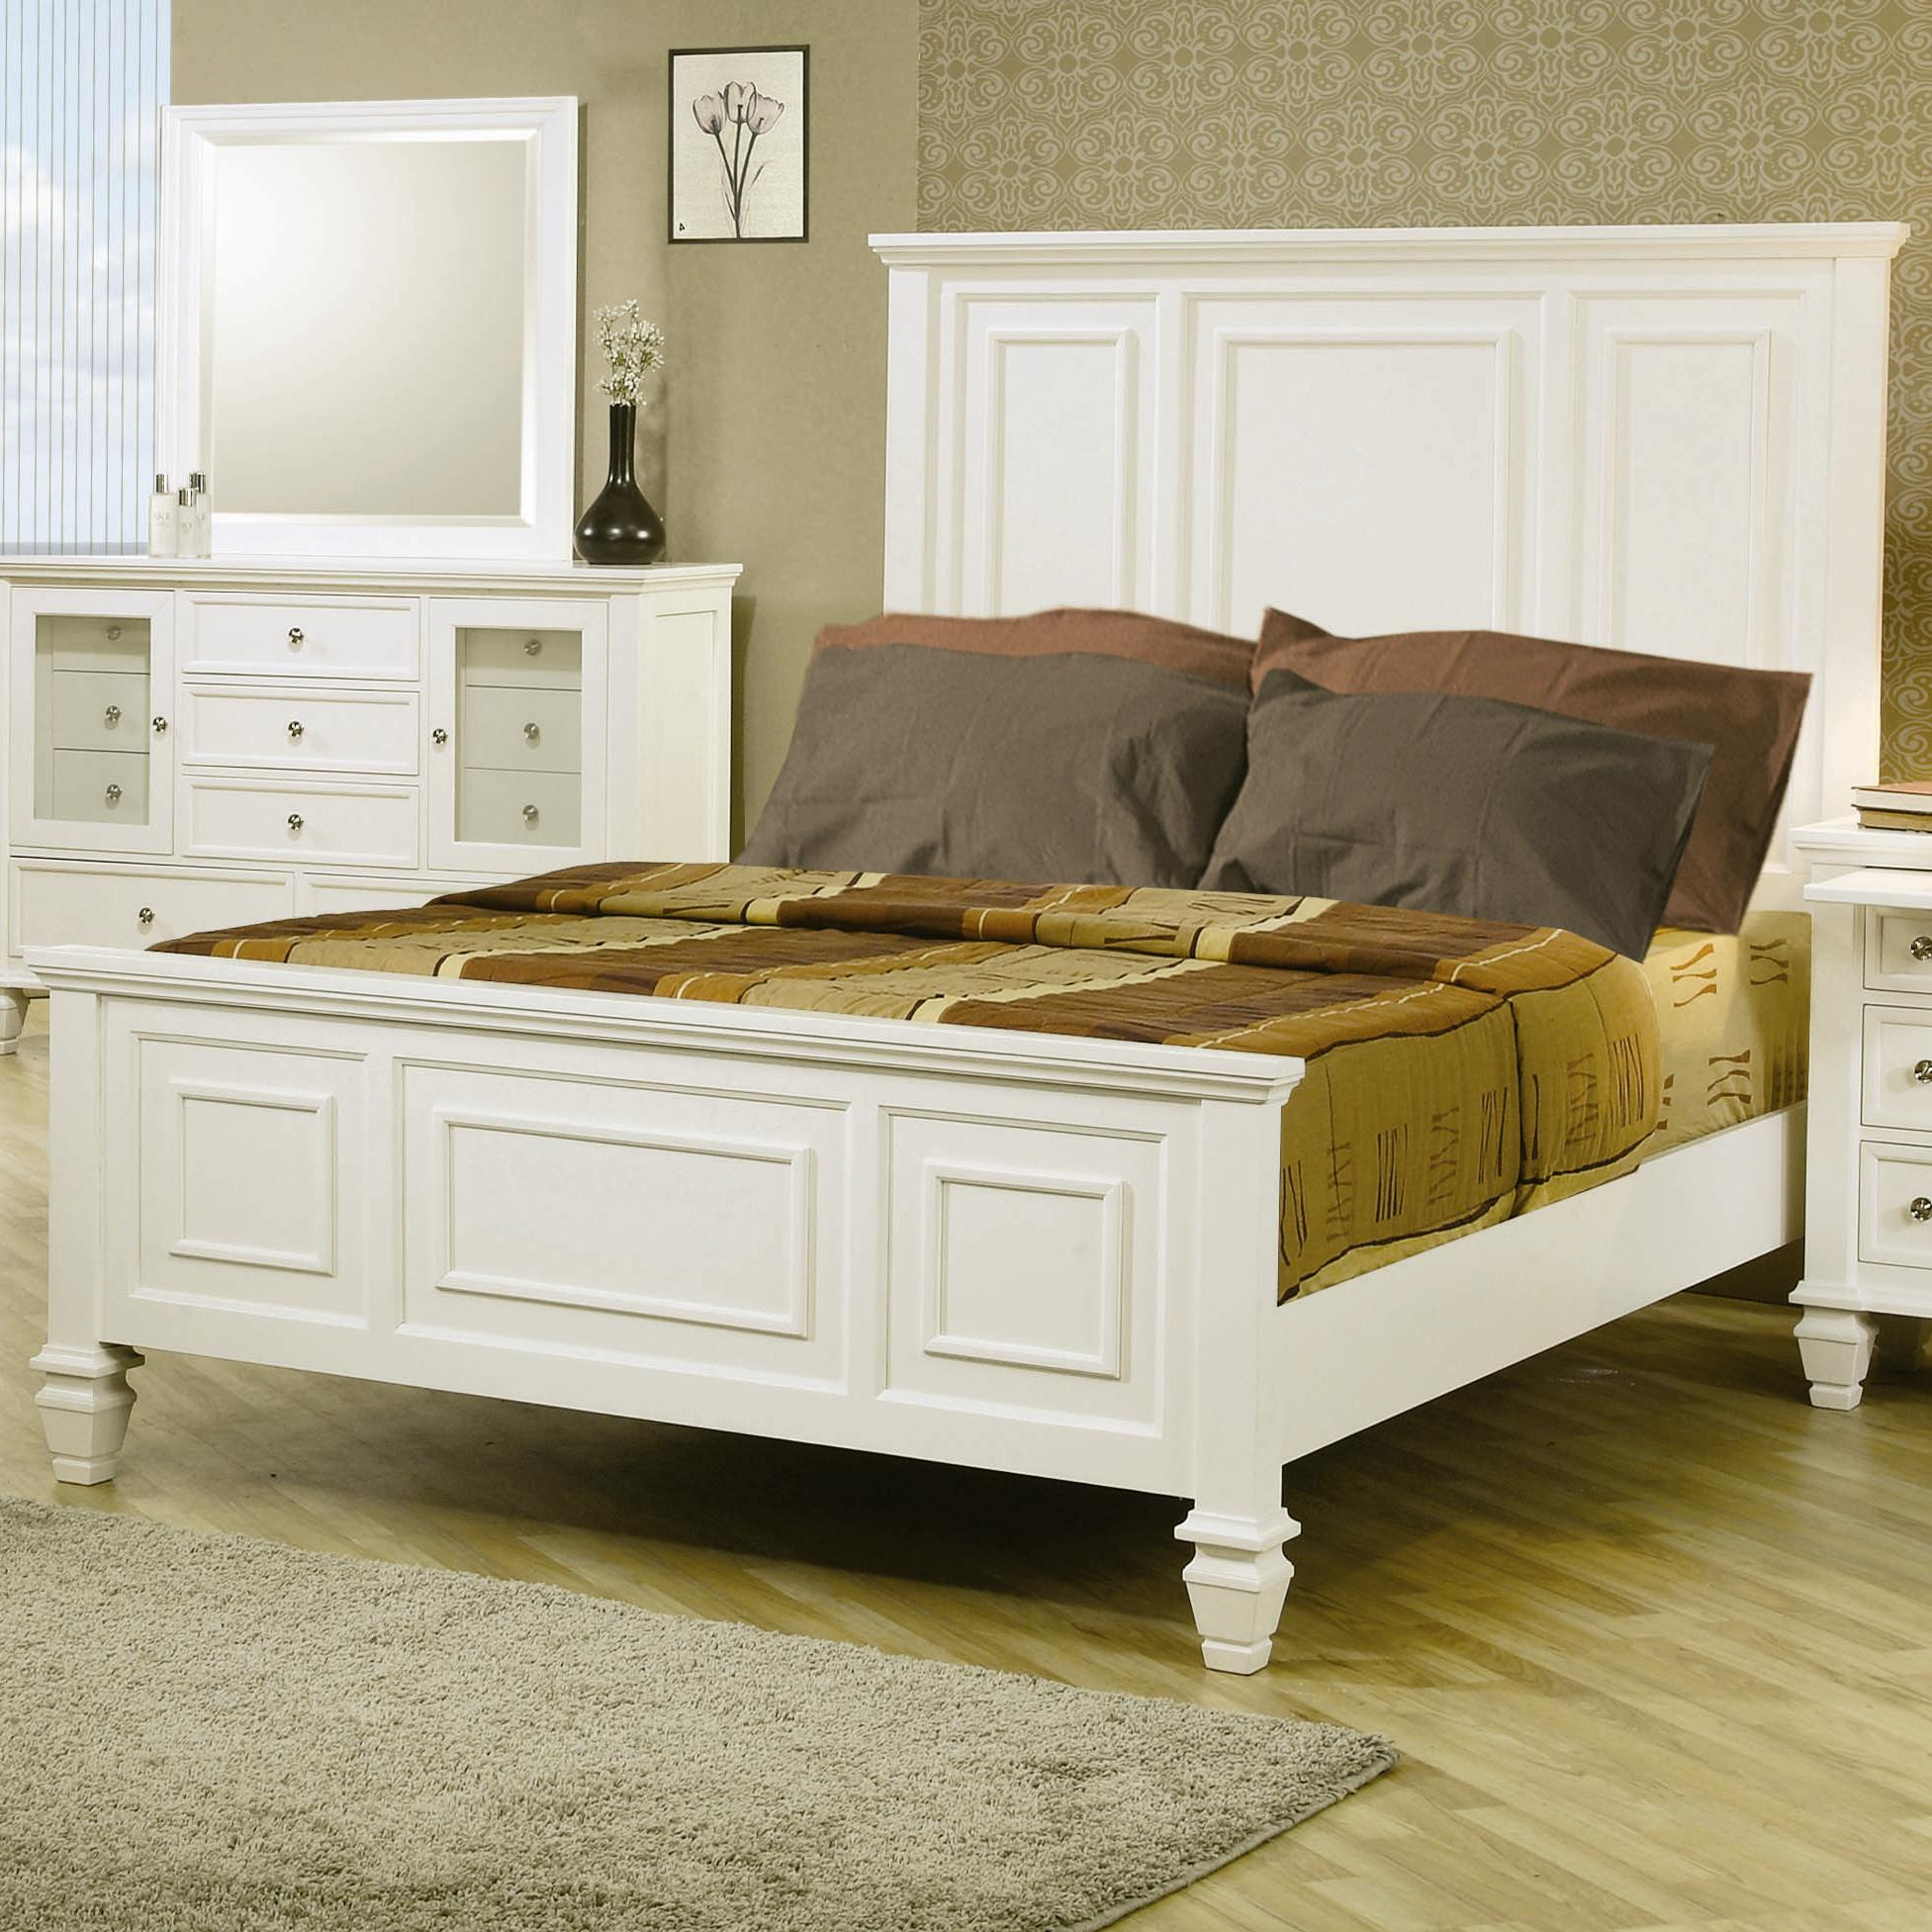 Coaster Furniture Sandy Beach White King Bed